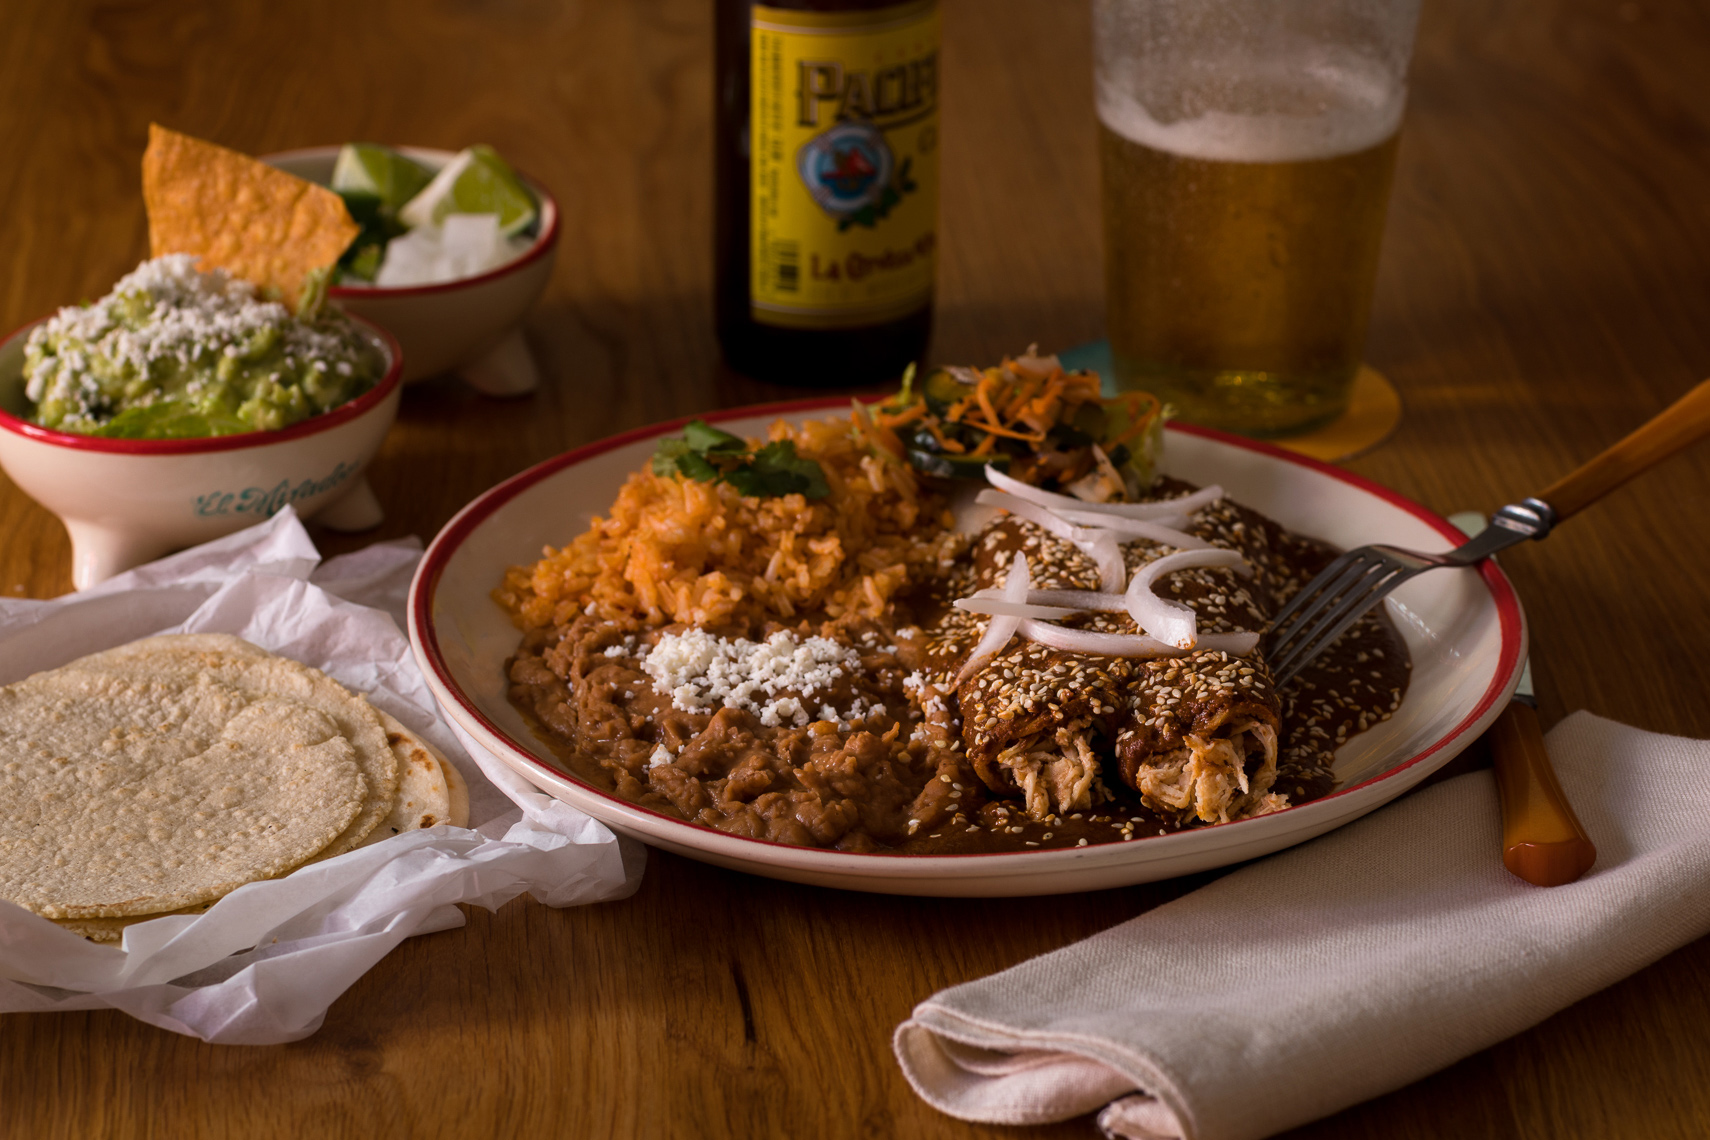 el-mirador-food-jason-risner-photography-9199